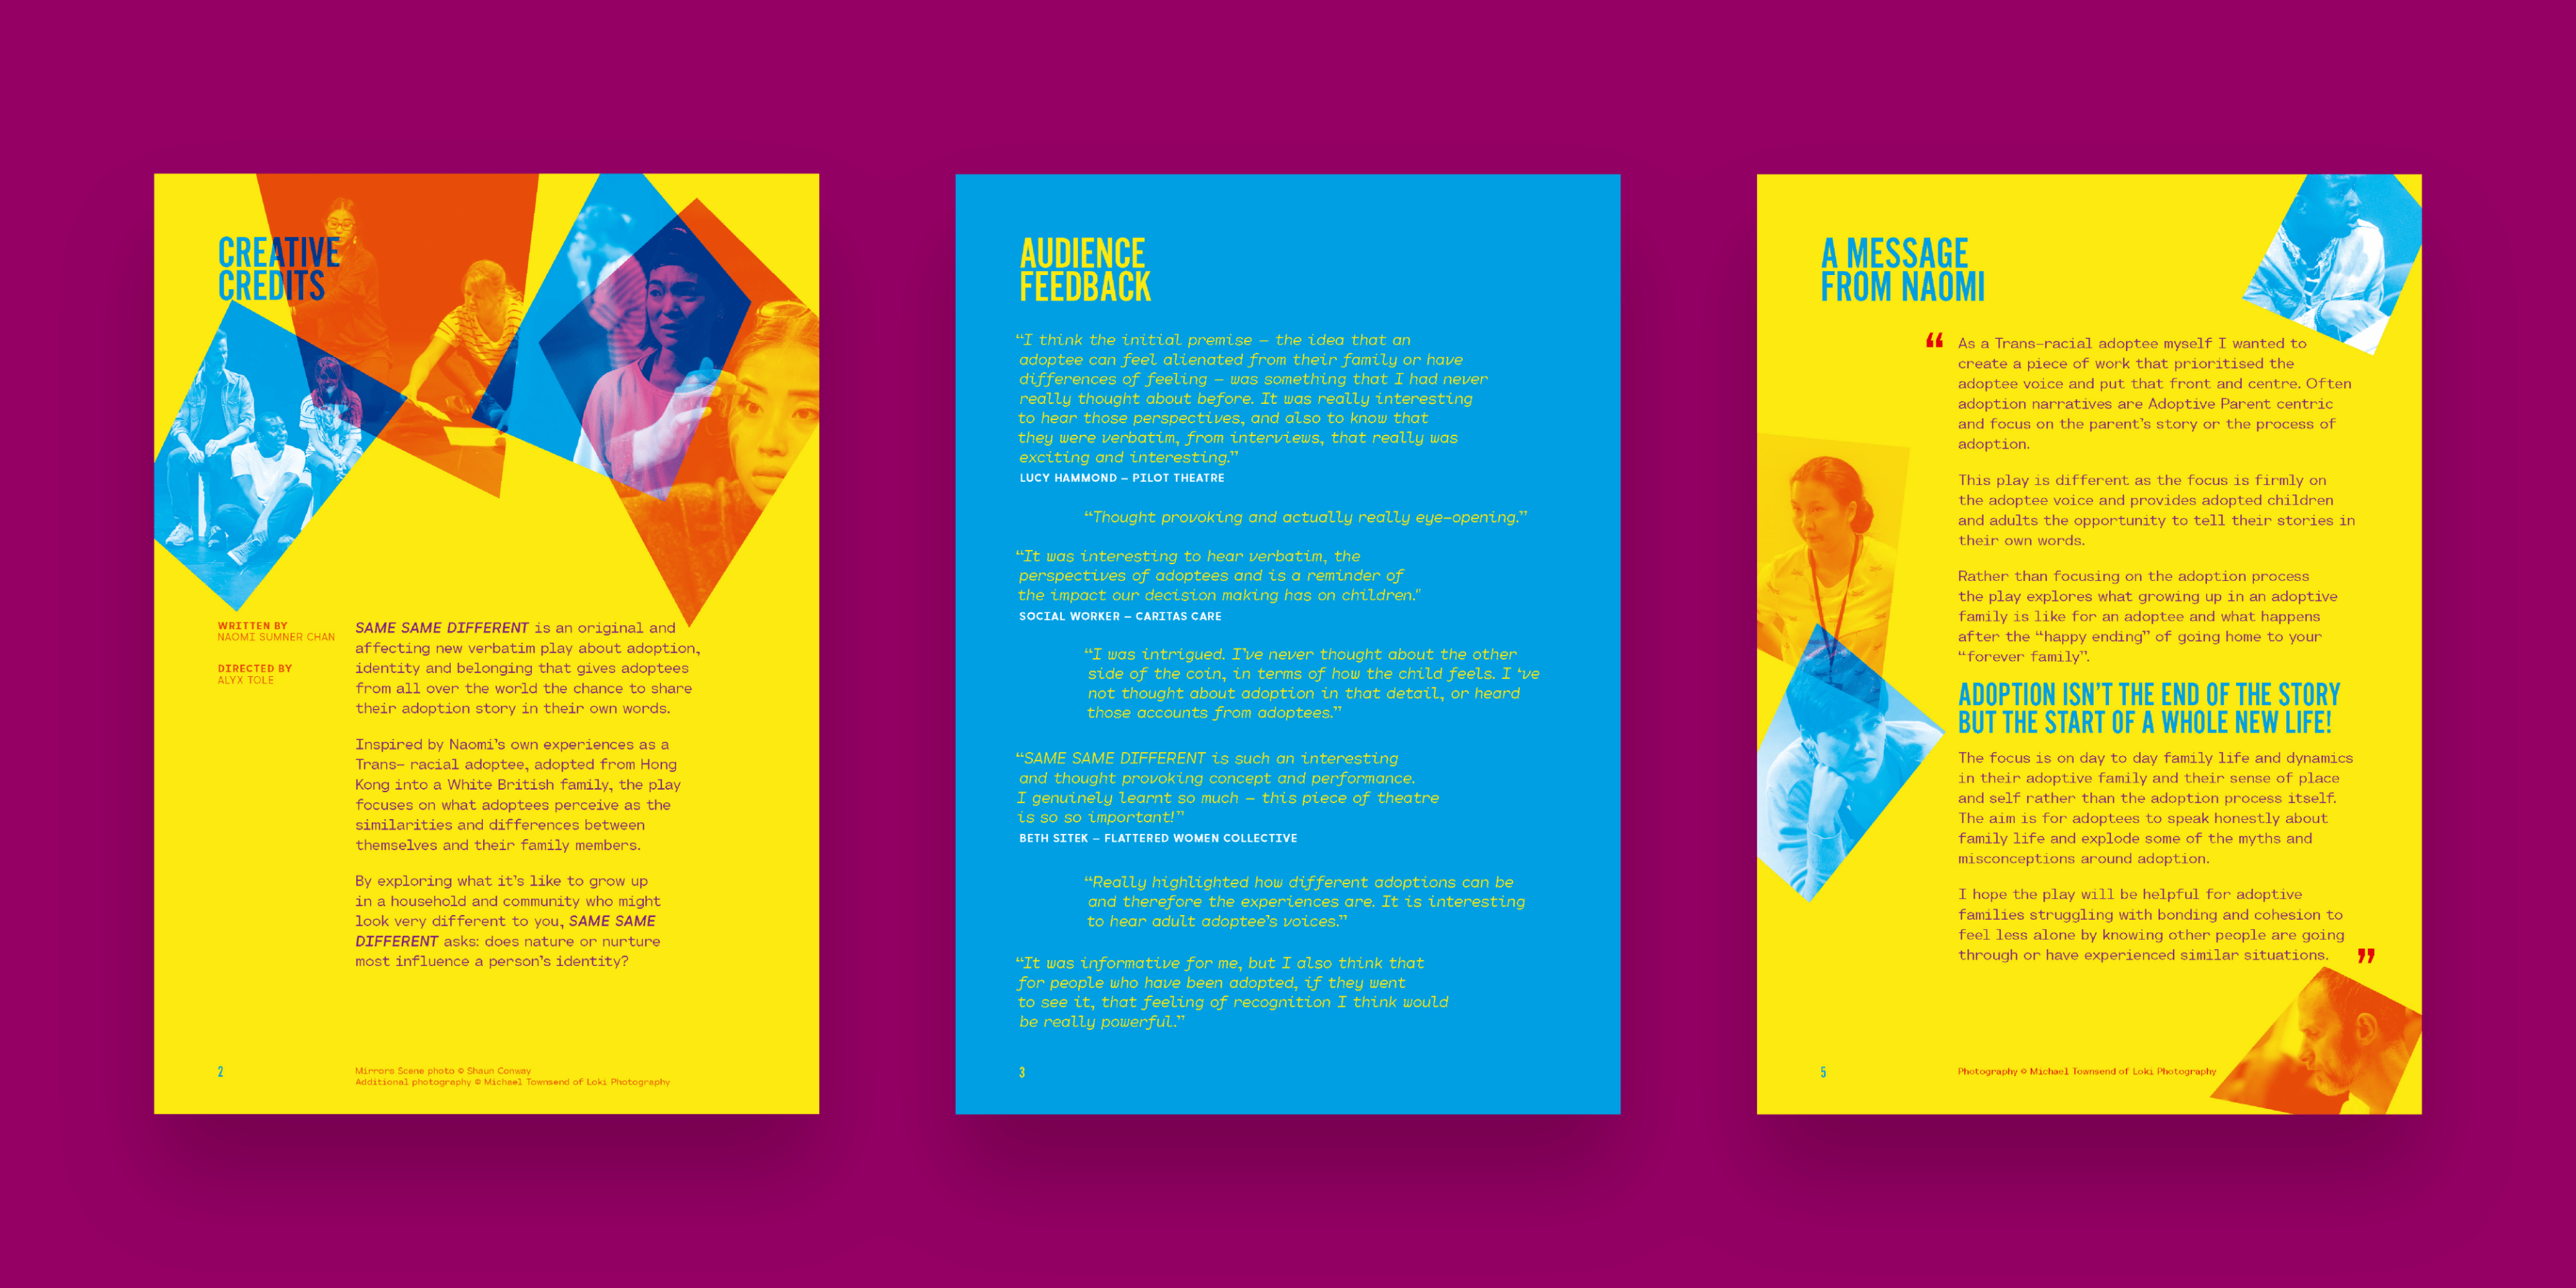 Three pages in the style of Same Same Different on a dark purple background. The first page is yellow with dark purple text, and overlapping images from the performance. The second page is blue with yellow text, which are quotations from the audience. The third page is a yellow page with alternative images and a message from the writer, demonstrating the mix of typography, condensed blue text for call outs and dark purple text for the message.